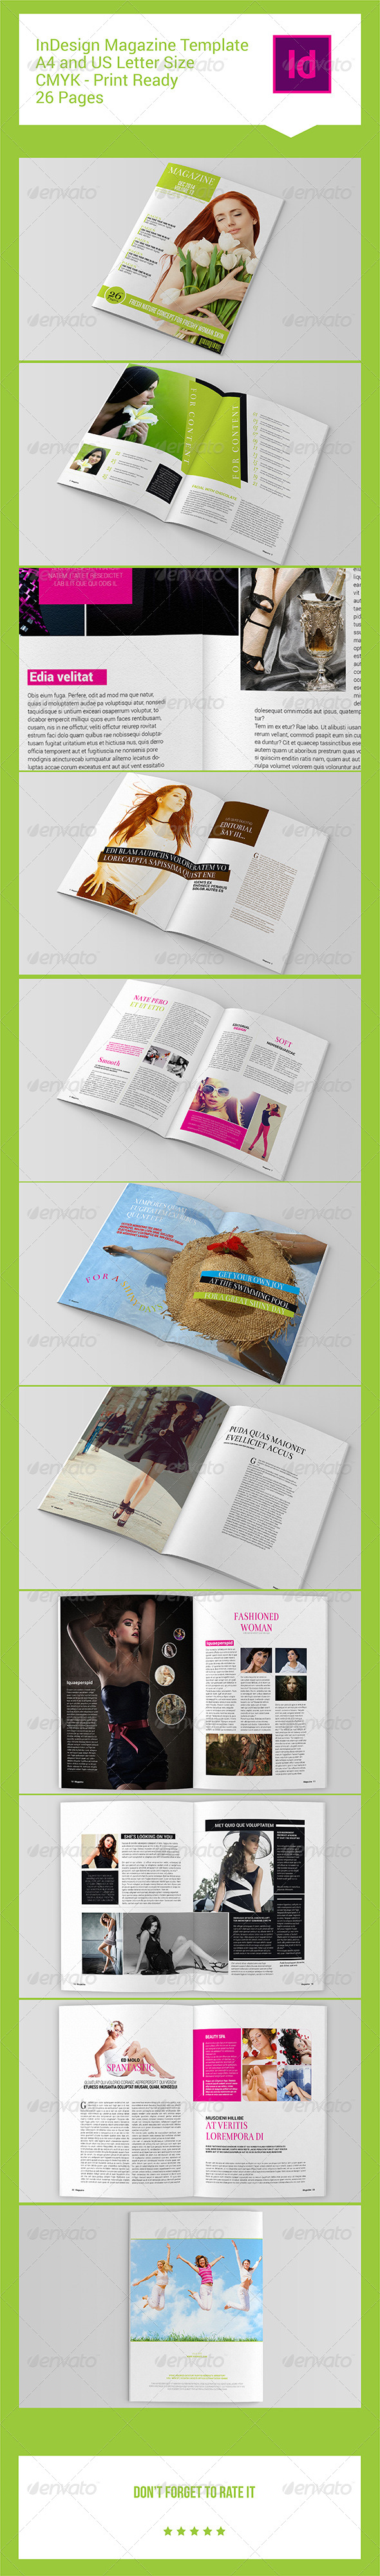 GraphicRiver InDesign Magazine Template 26 Pages 8373829